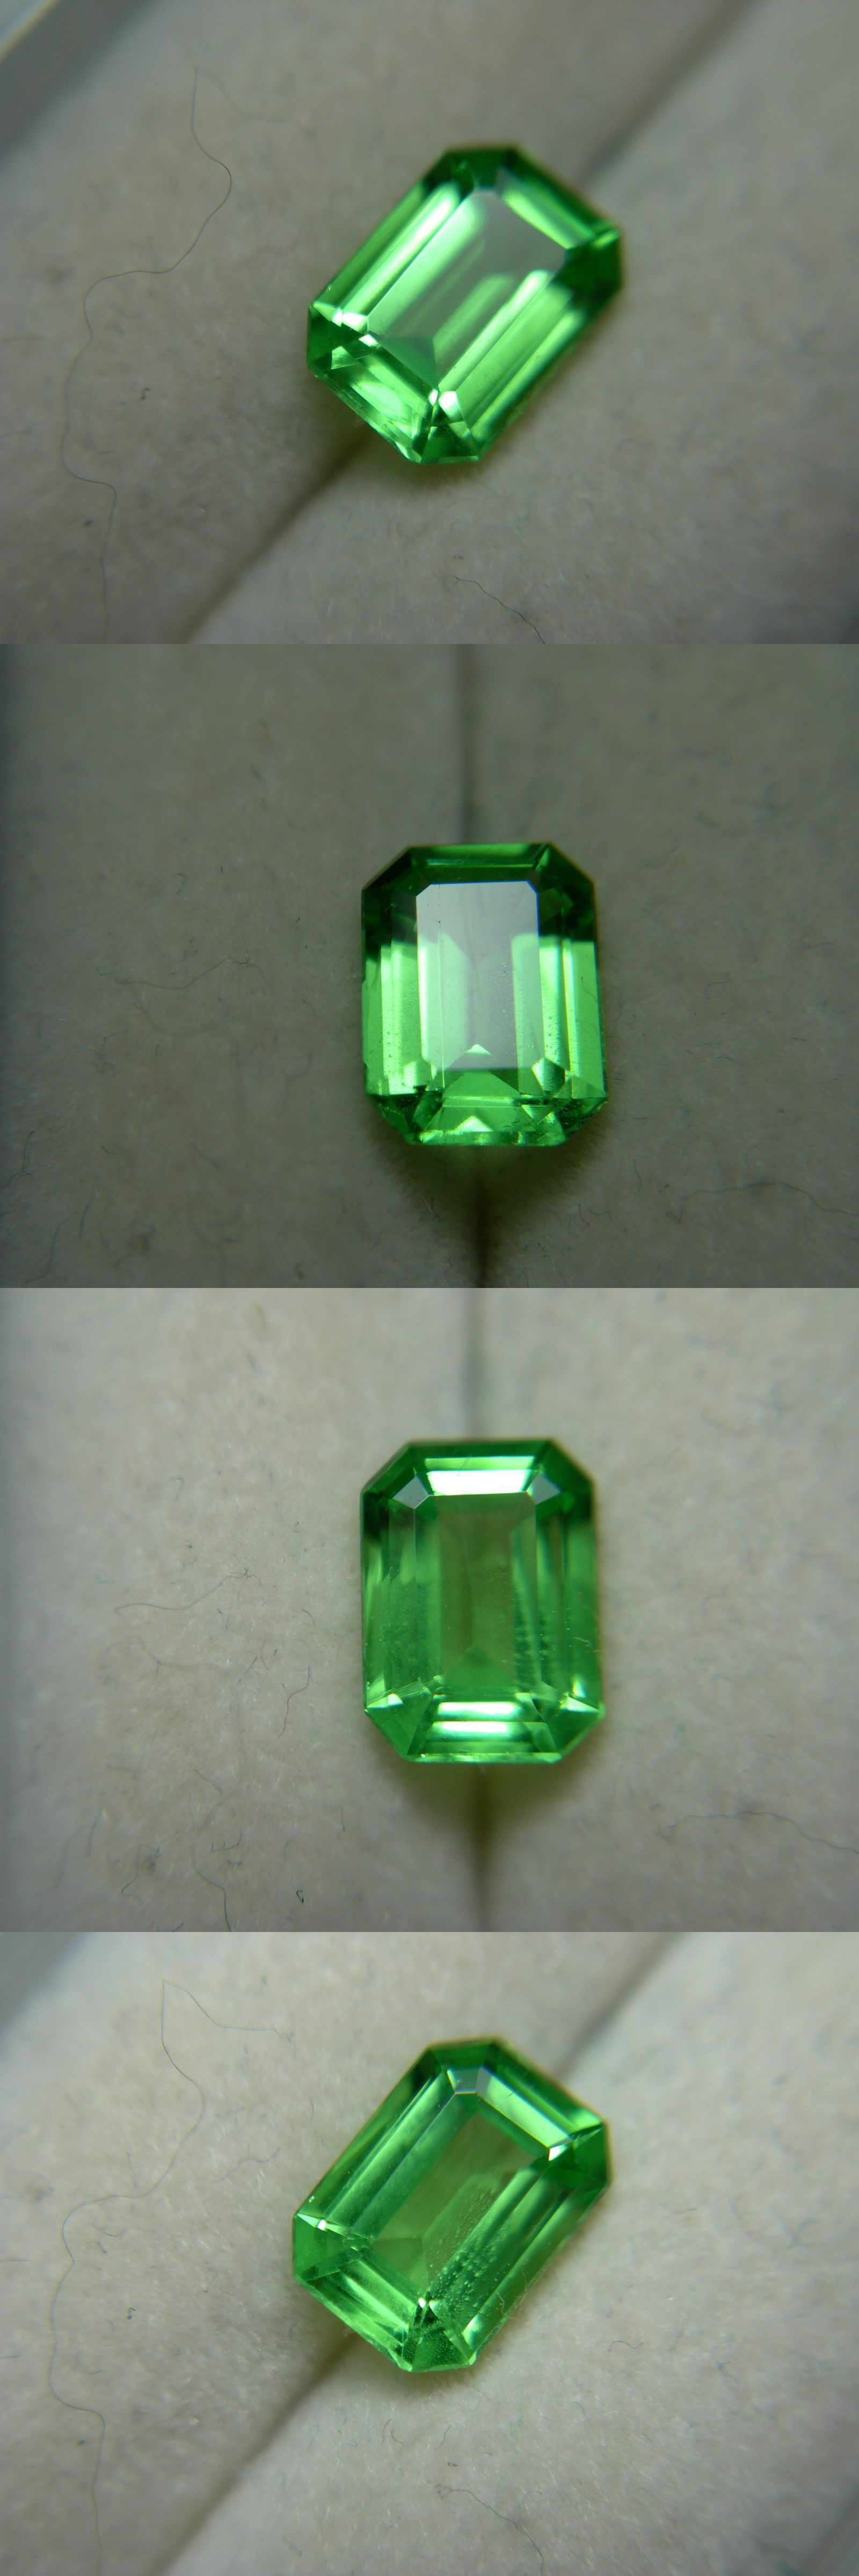 large platinum btw gemstone p ring image c quality diamond rare very tsavorite